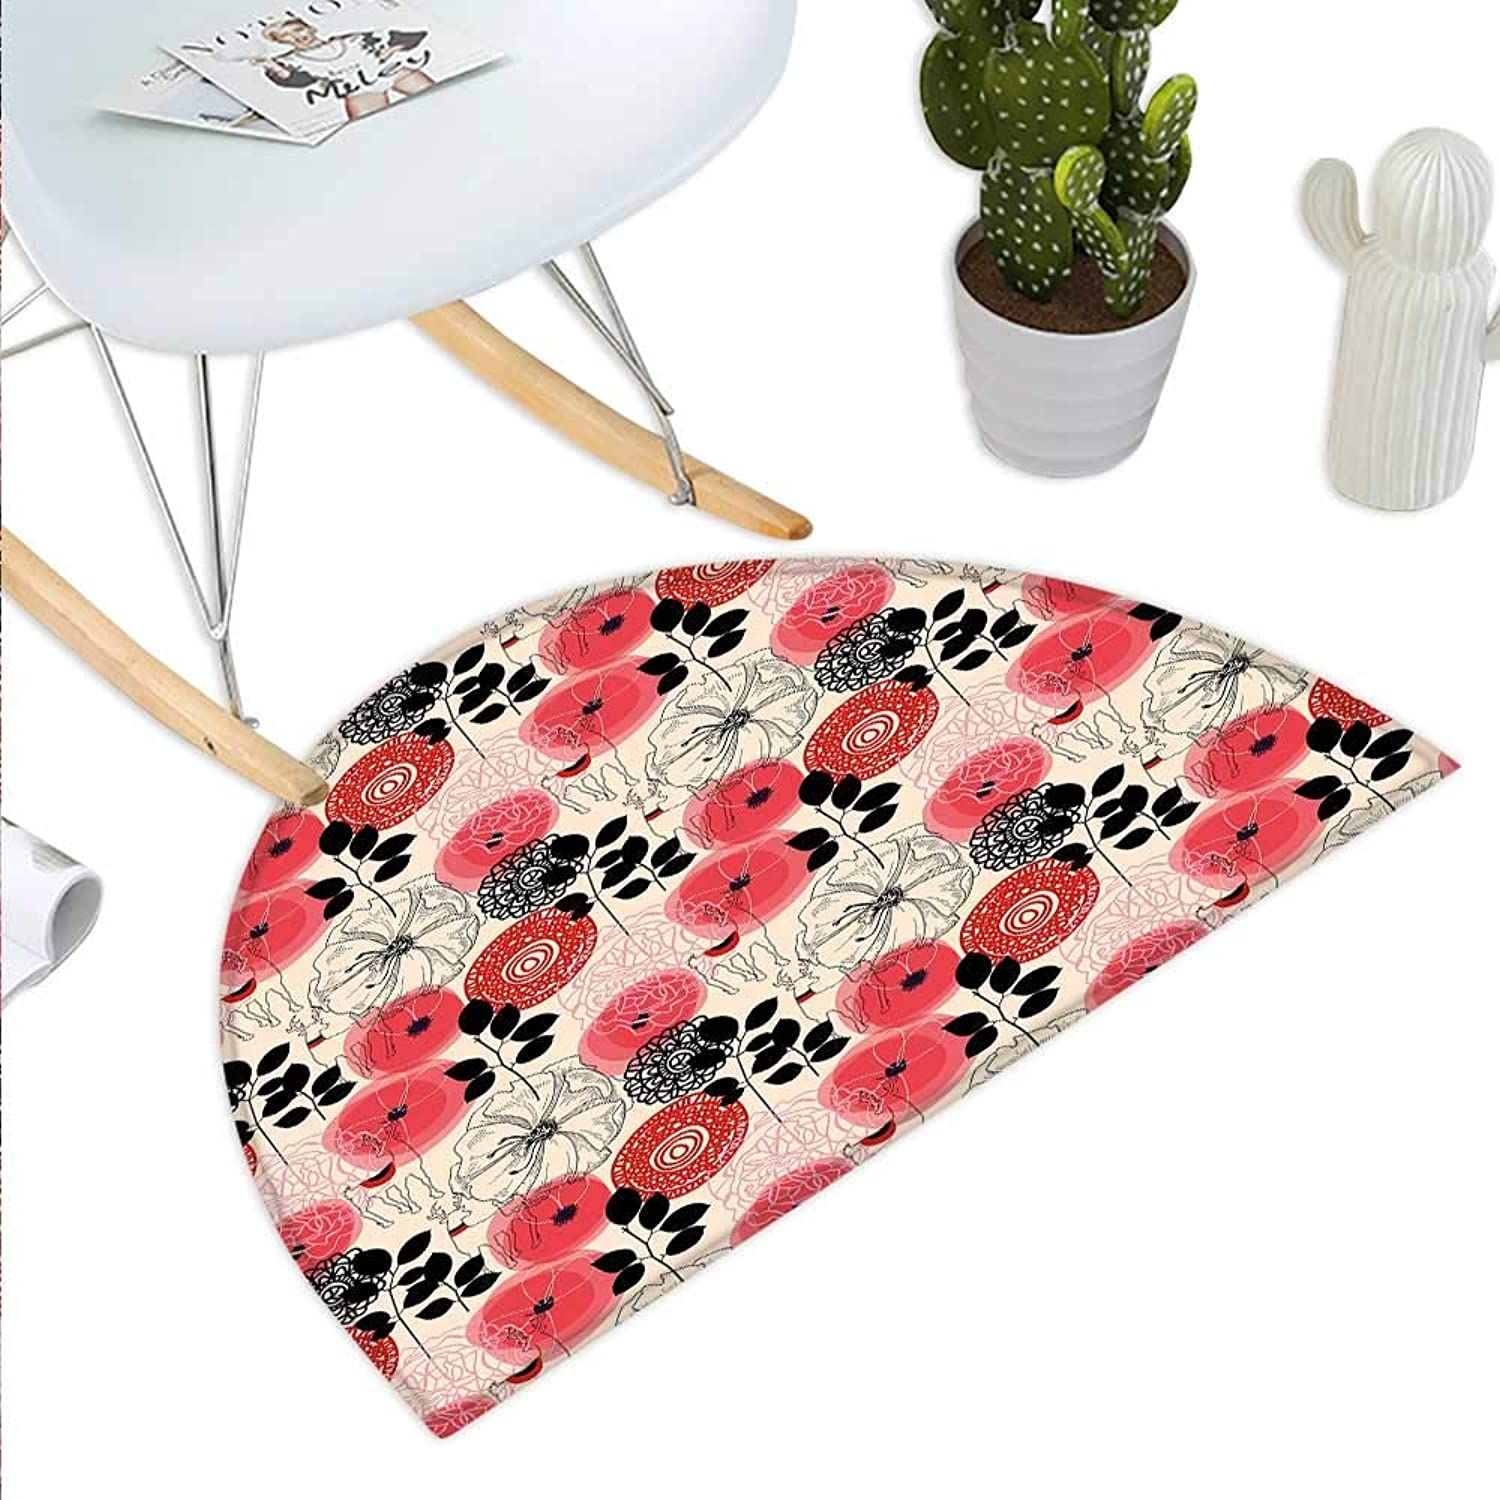 Deer Semicircle Doormat Doodle Style Abstract Floral with Abstract Wildflowers Leaves and Animals Halfmoon doormats H 43.3  xD 64.9  Vermilion Black Cream